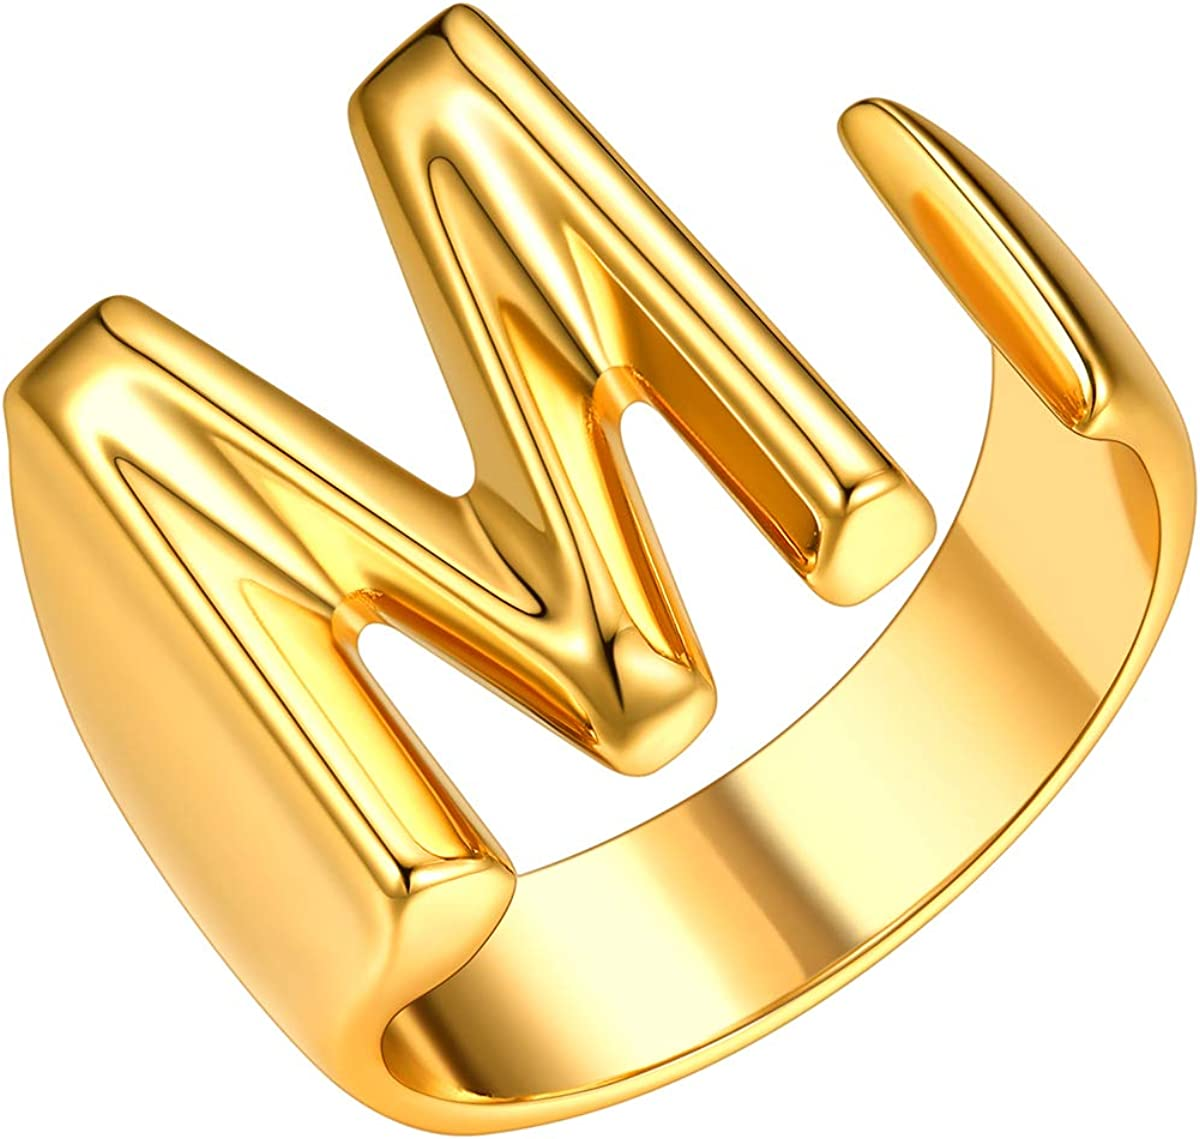 FOCALOOK Initial Ring 18K Gold Plated Rings Reservation Ope Letter Dedication for Women